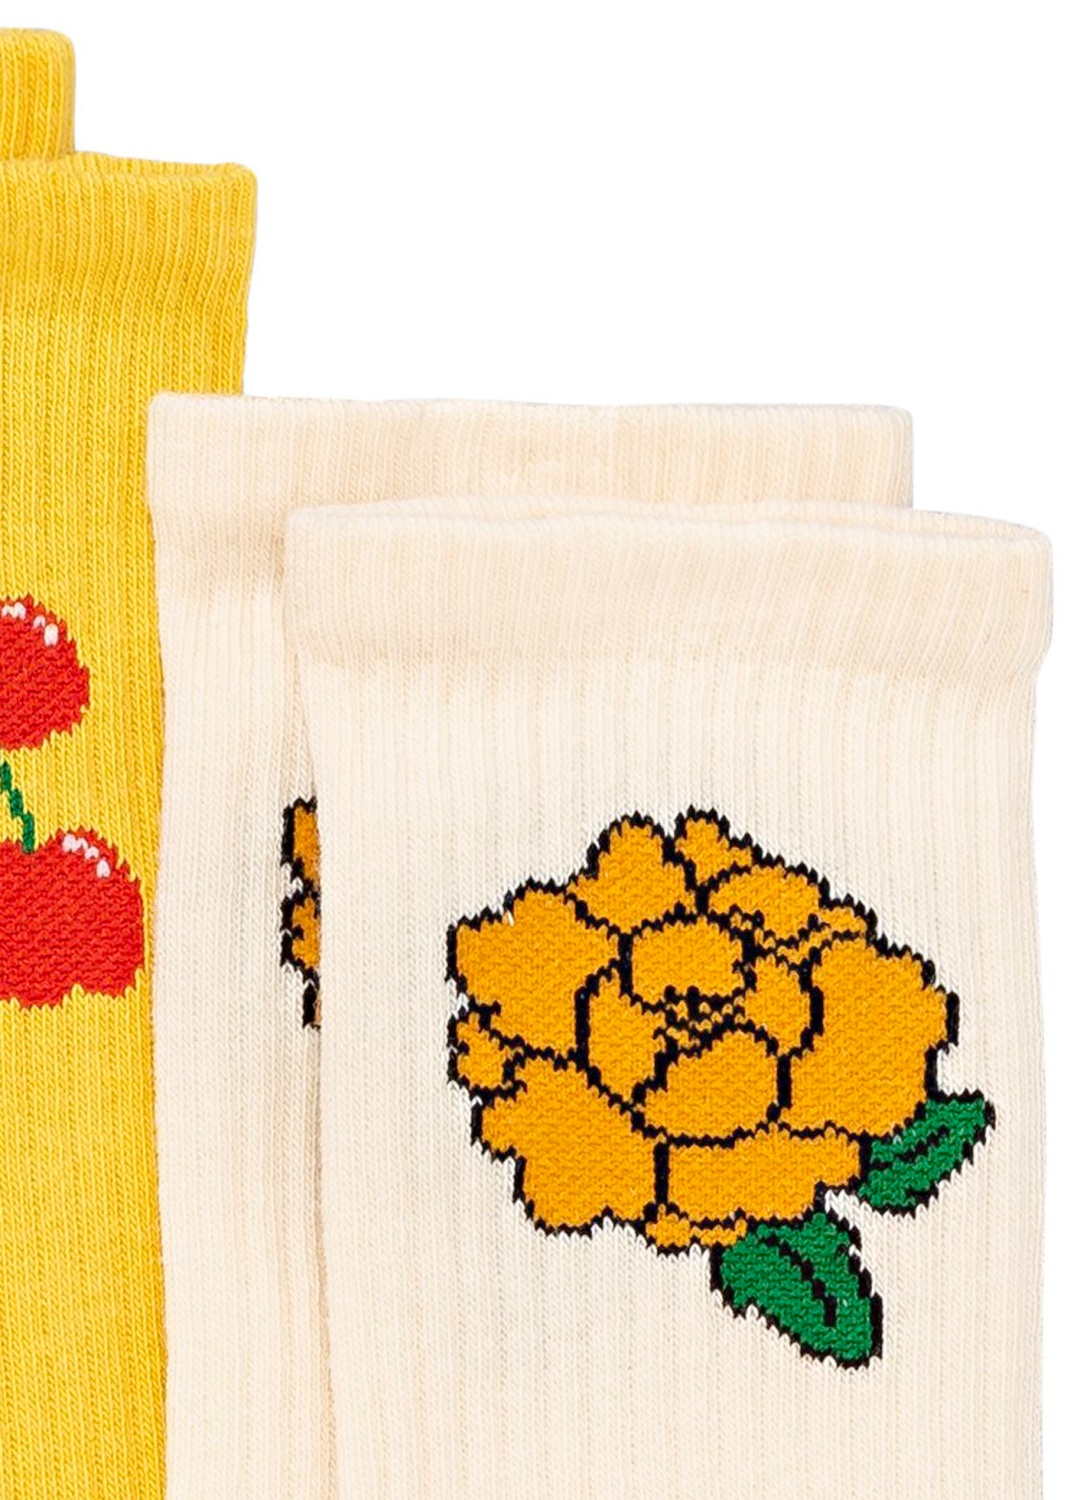 Cherry and co 3 pack socks image number 3